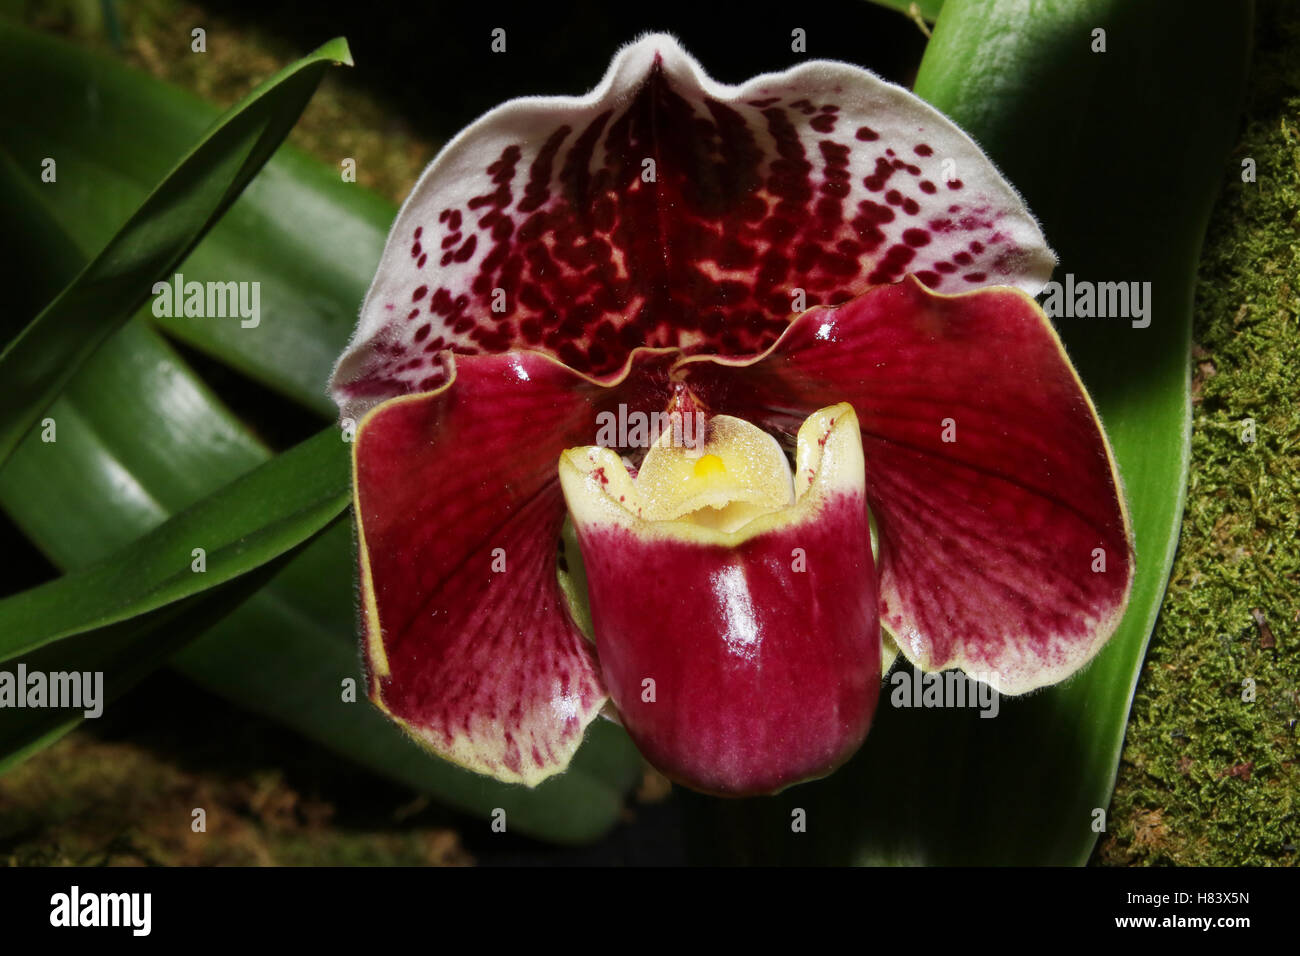 Lady Slipper Orchid. Lady's Slipper Orchid. Paphiopedilum Thunder Cat x Valwin. Orchid flower show. By the Miami - Stock Image